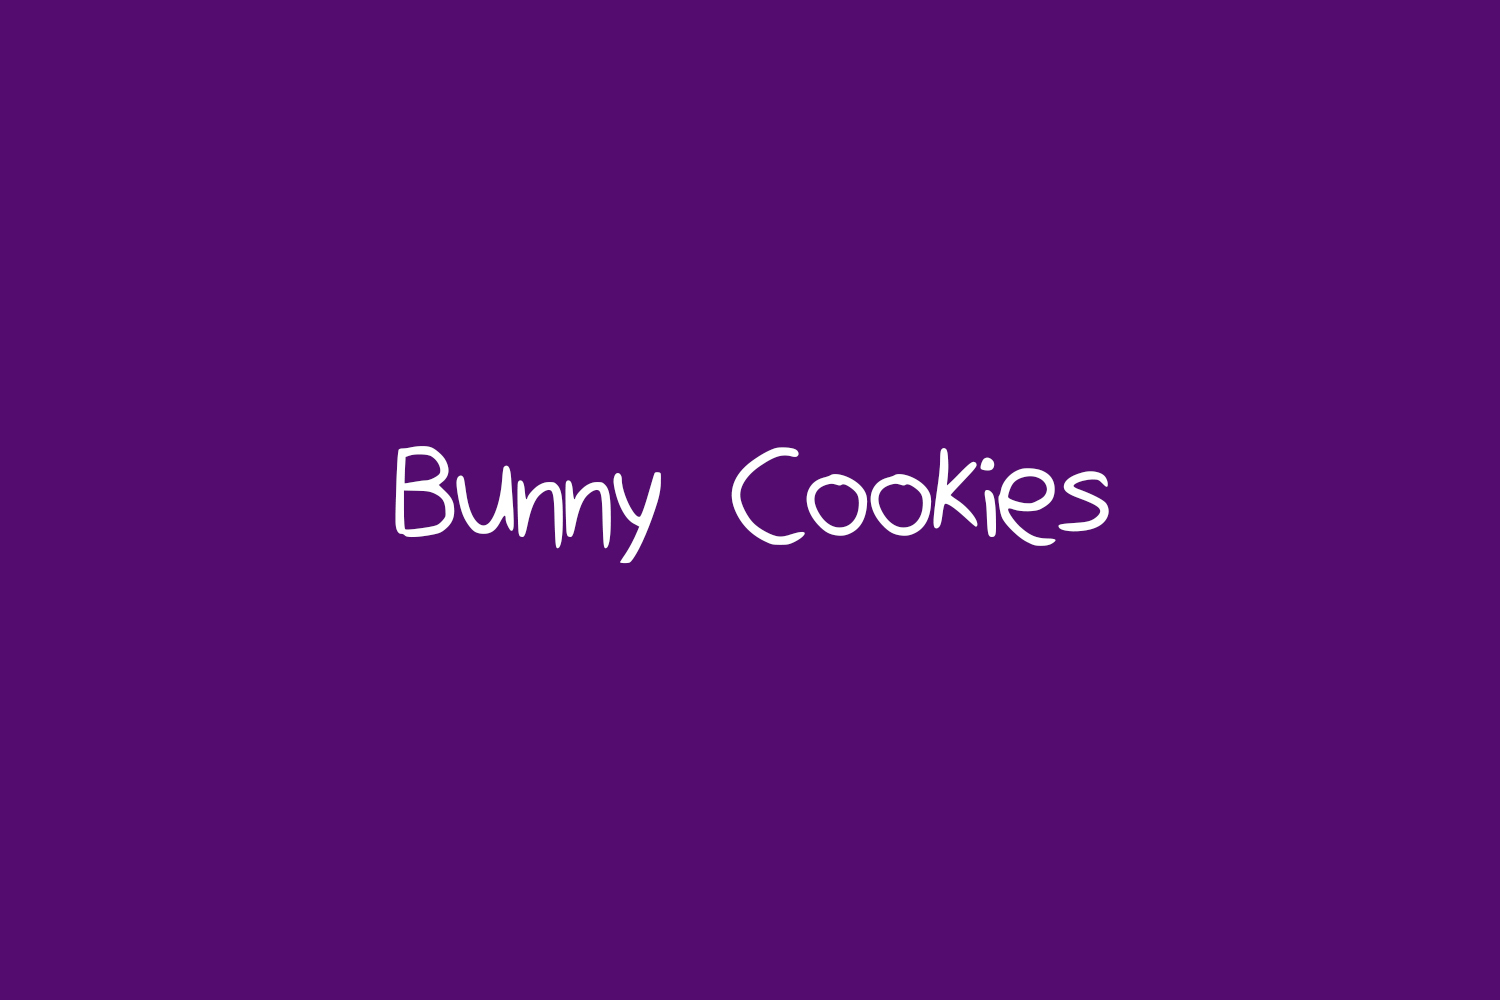 Bunny Cookies Free Font